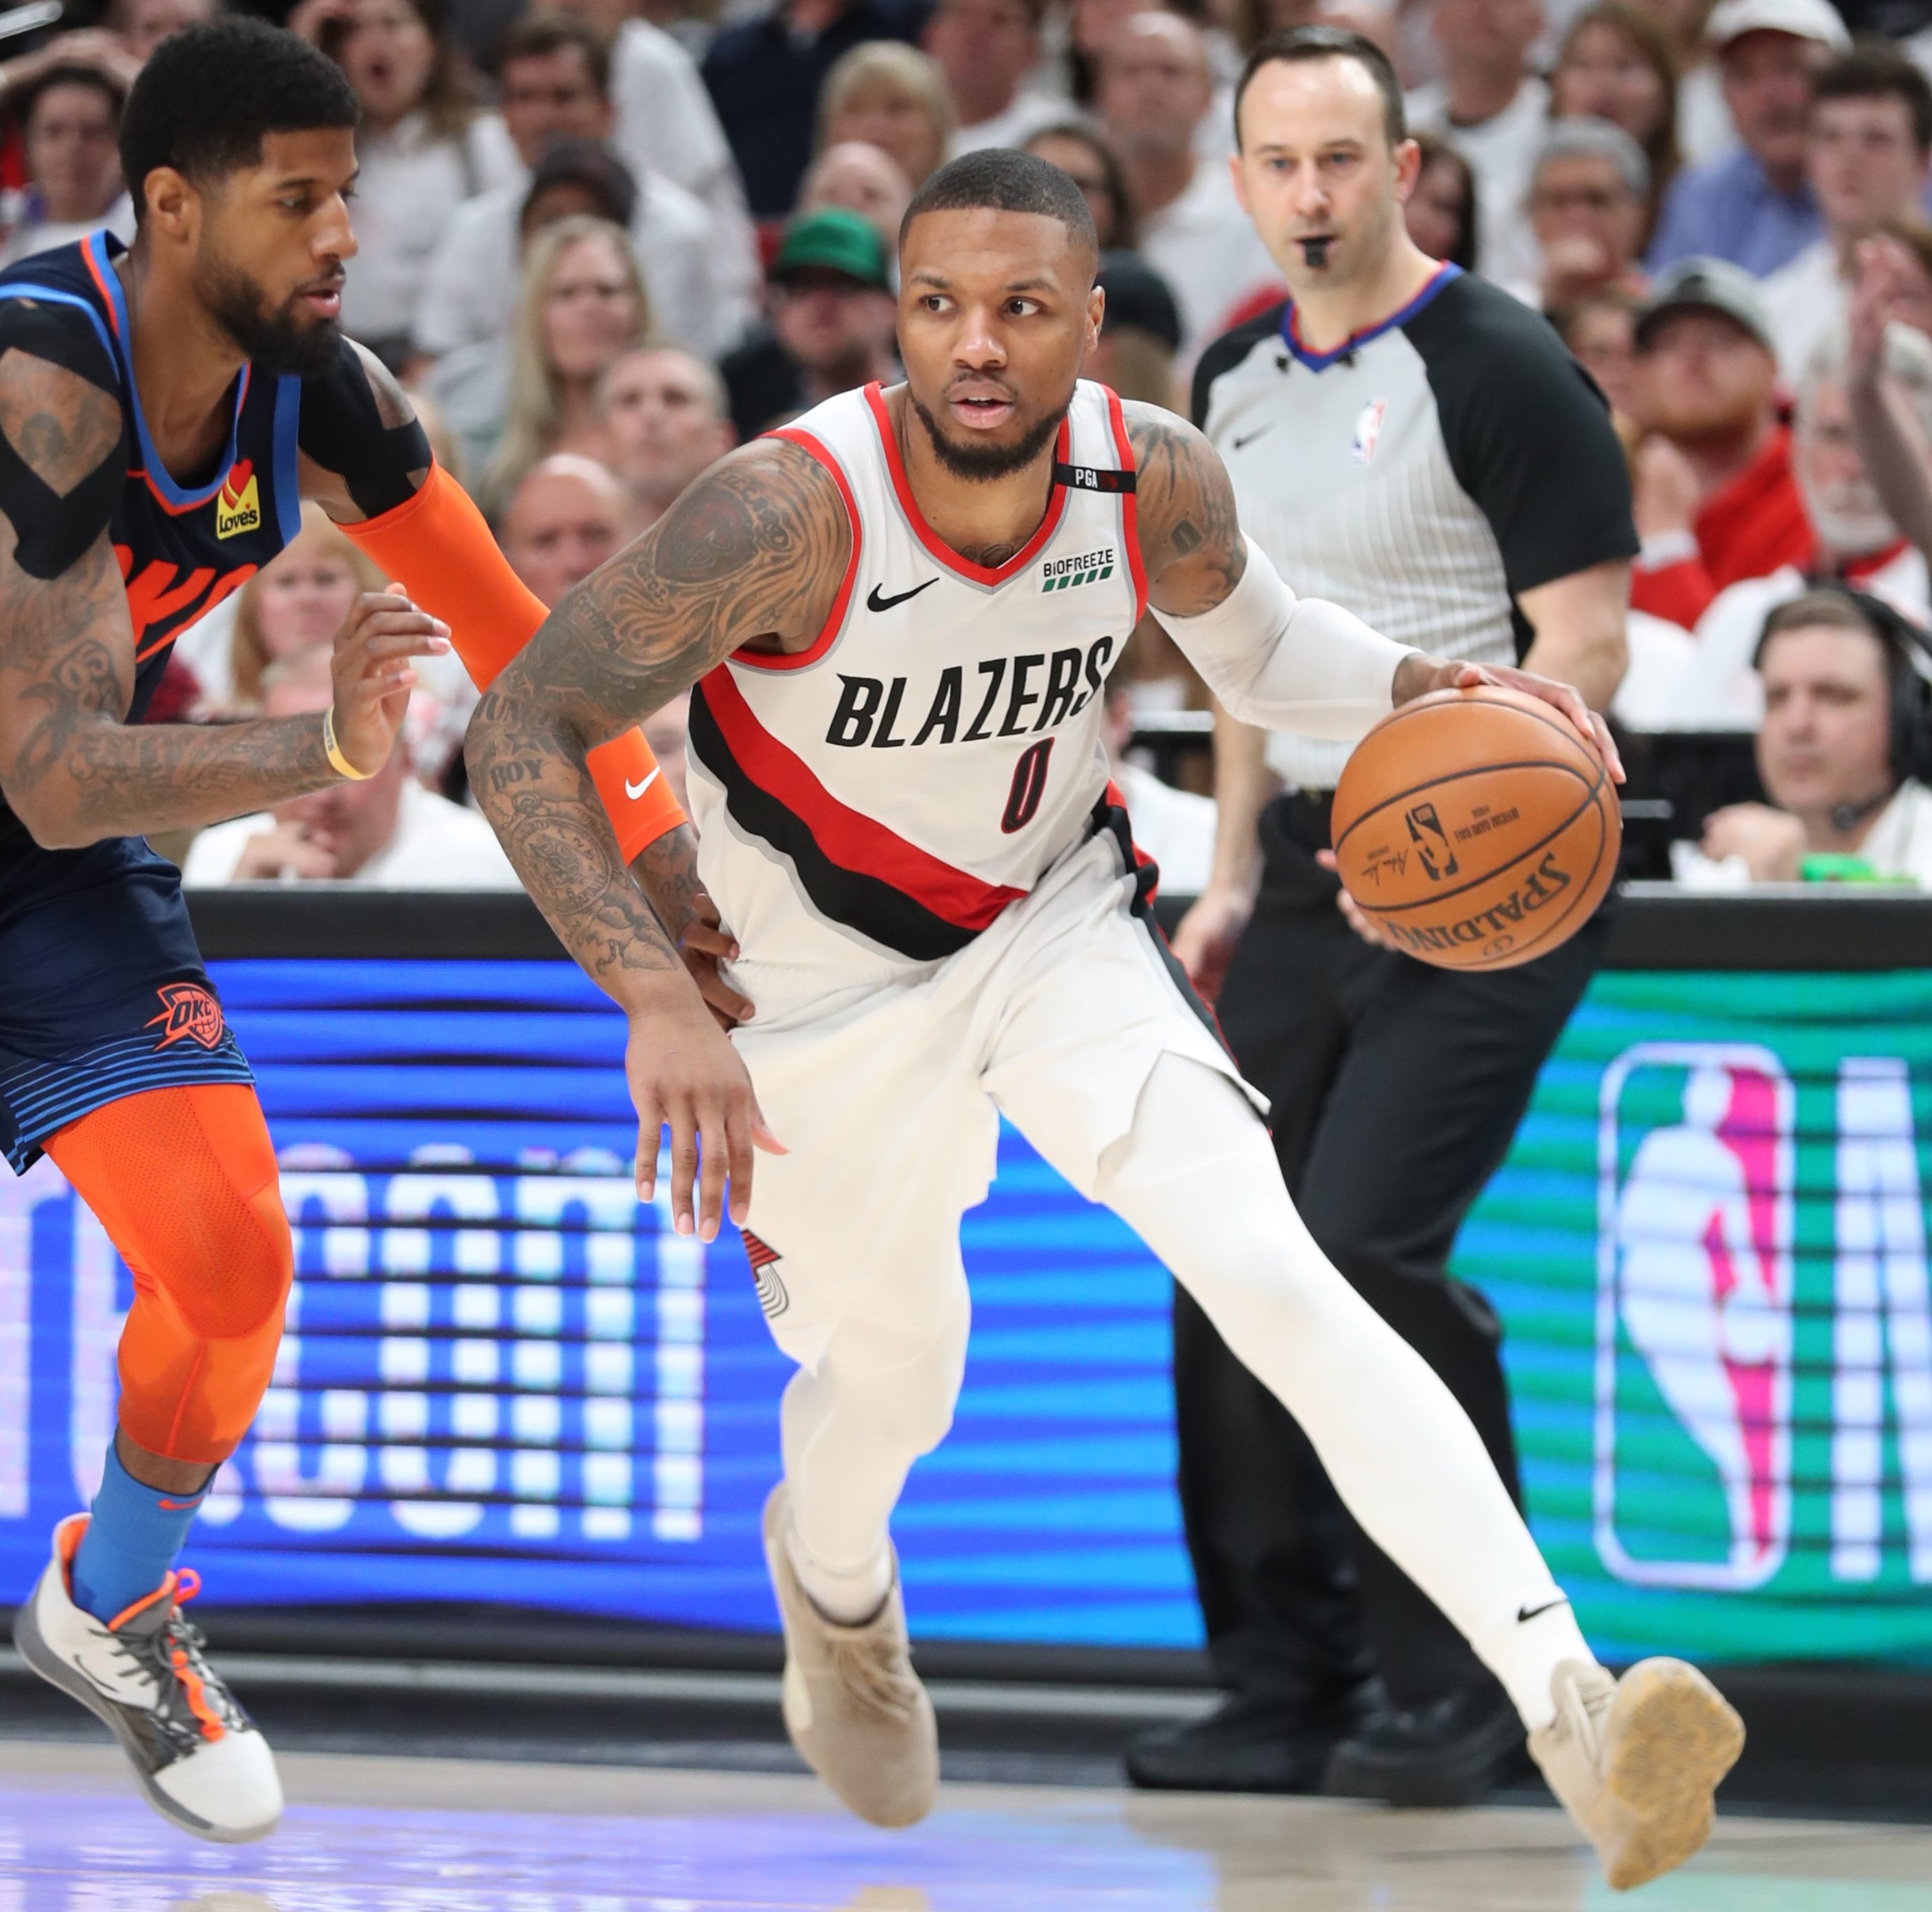 Portland Trail Blazers: Lillard hits walk-off 3-pointer to knock out Thunder